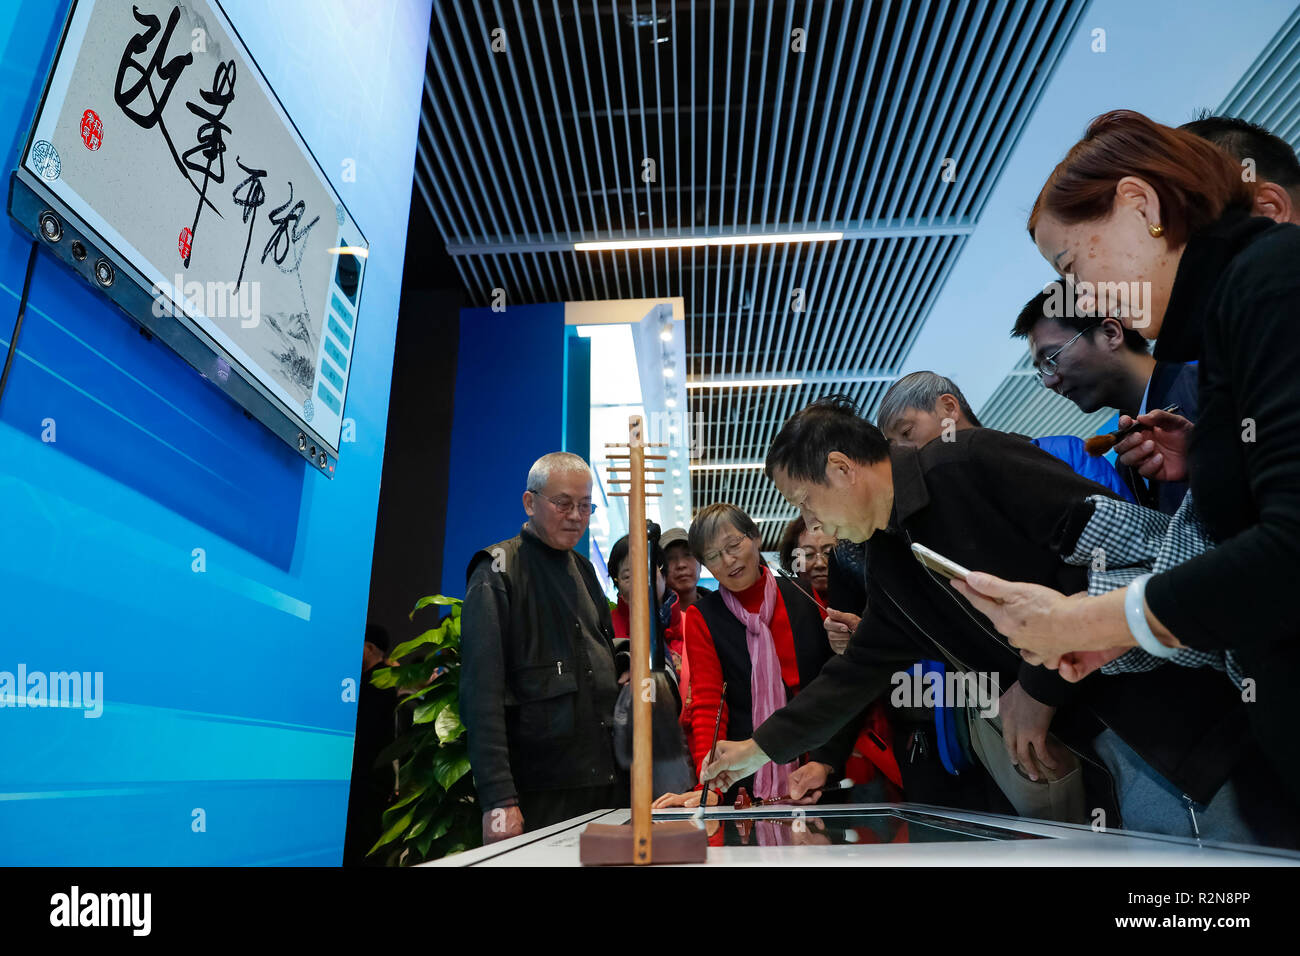 Beijing, China. 20th Nov, 2018. The 64-year-old Huang Chengchu from central China's Hunan Province experience an intelligent calligraphy exhibit during a major exhibition to commemorate the 40th anniversary of China's reform and opening-up at the National Museum of China in Beijing, capital of China, Nov. 20, 2018. Credit: Shen Bohan/Xinhua/Alamy Live News - Stock Image